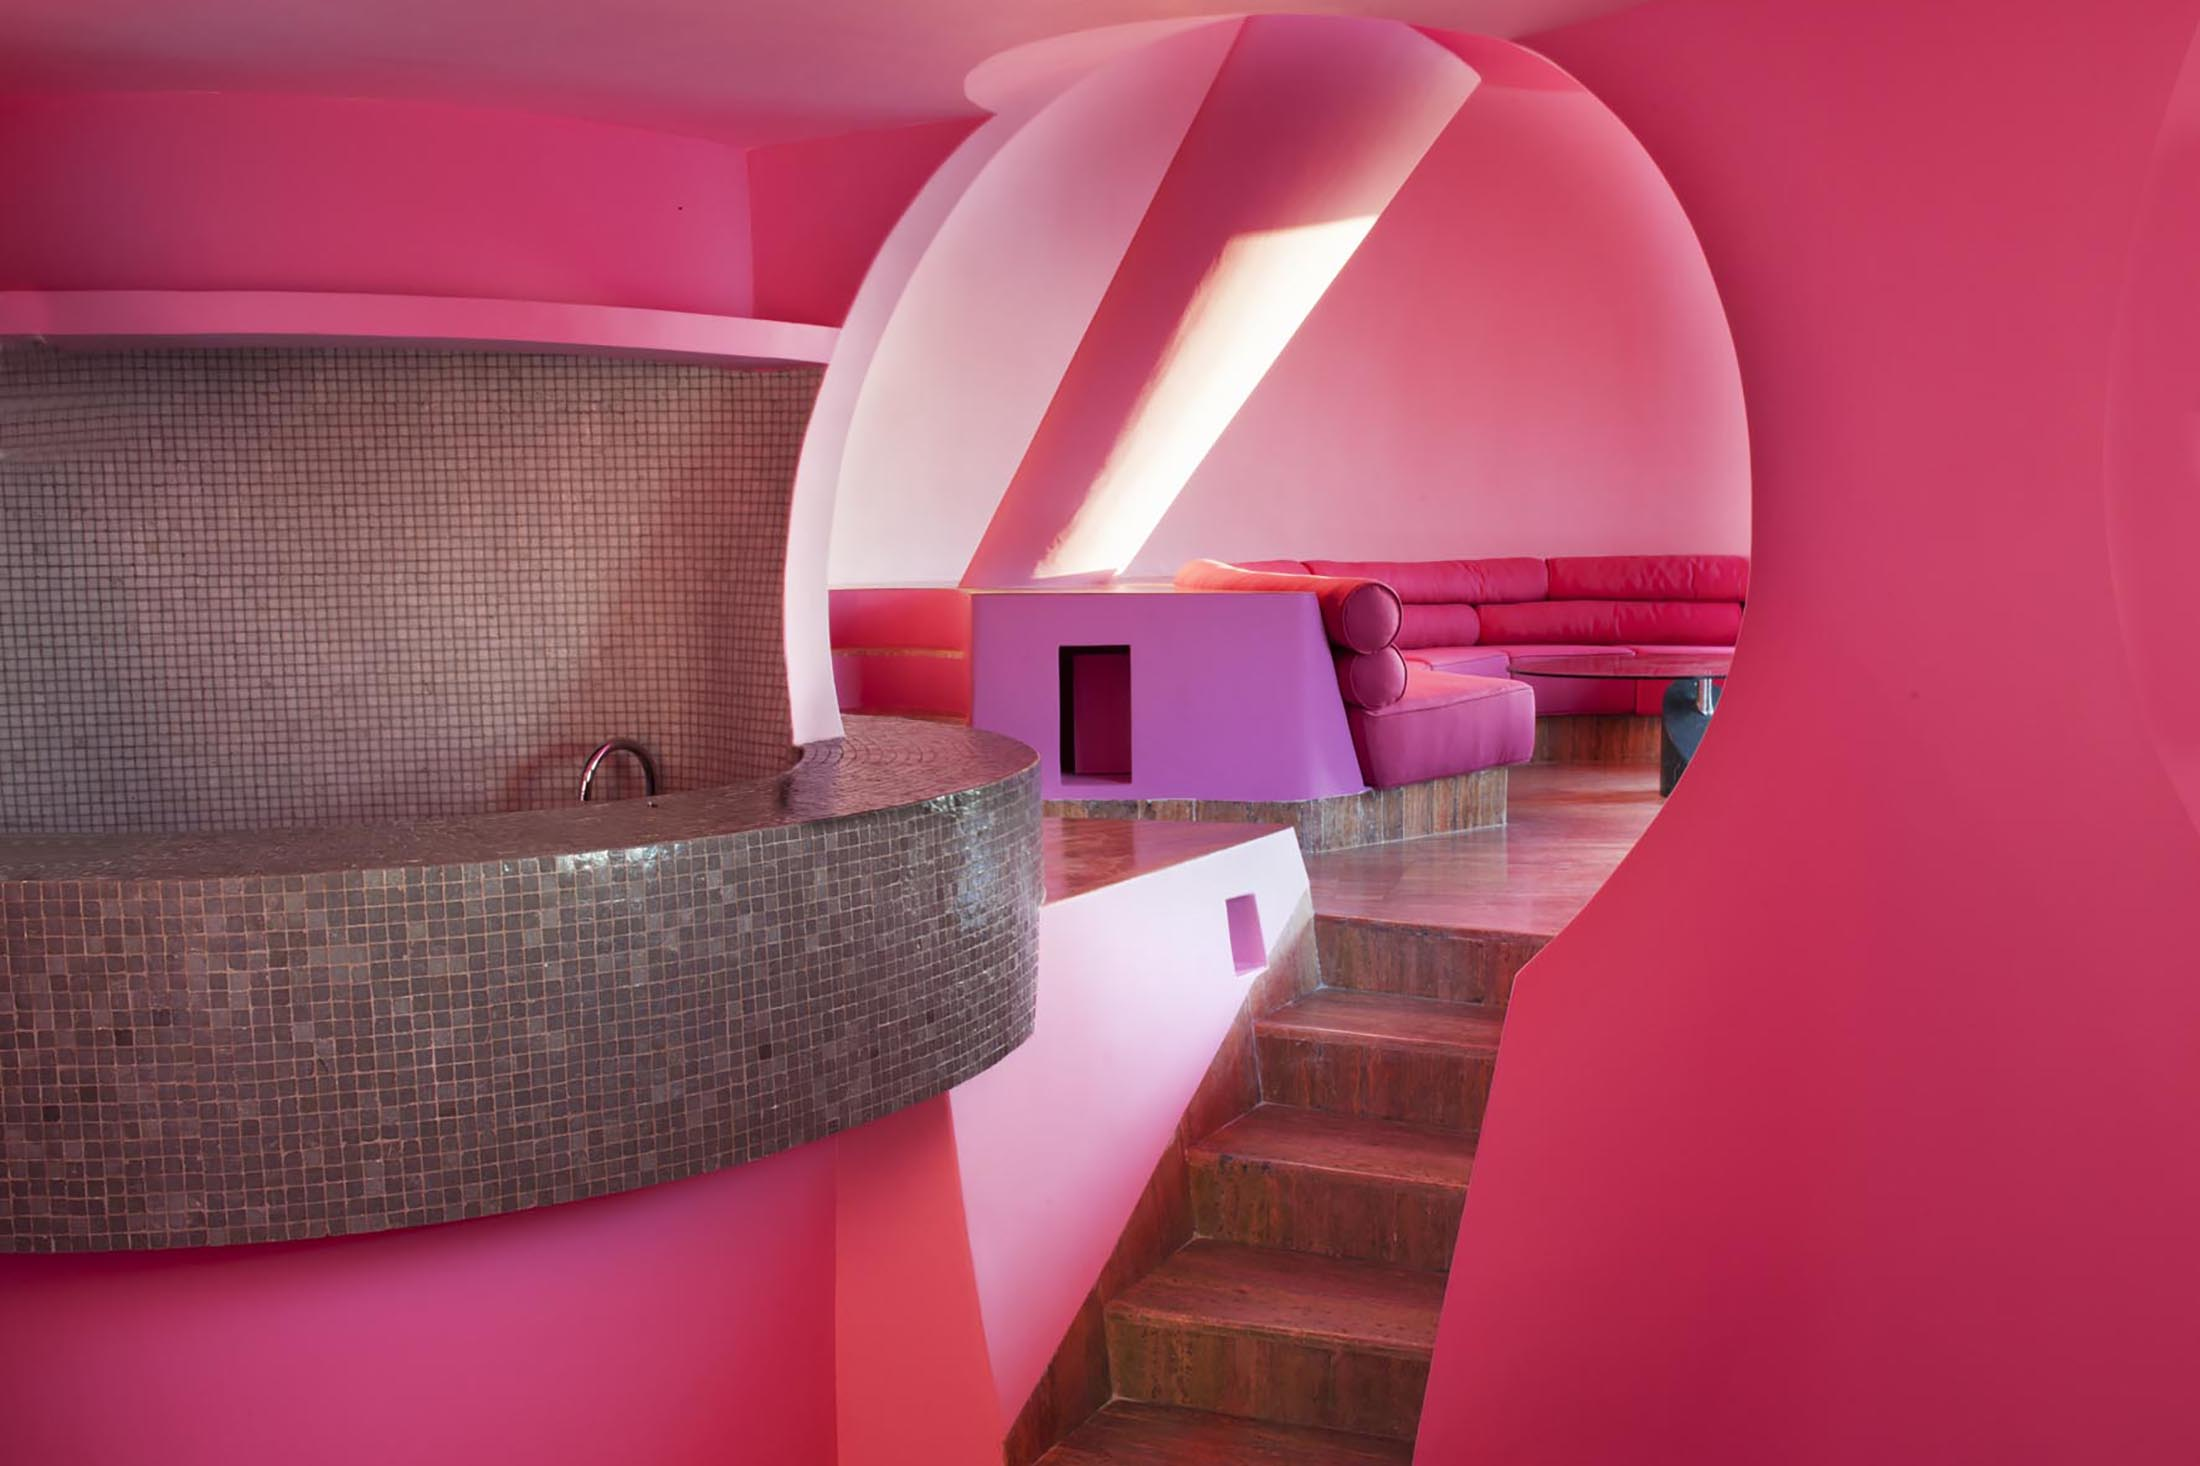 """The interior of the """"bubble house,"""" originally designed by Antti Lovag and renovated by Decq. (Photo: Yves Gellie)"""